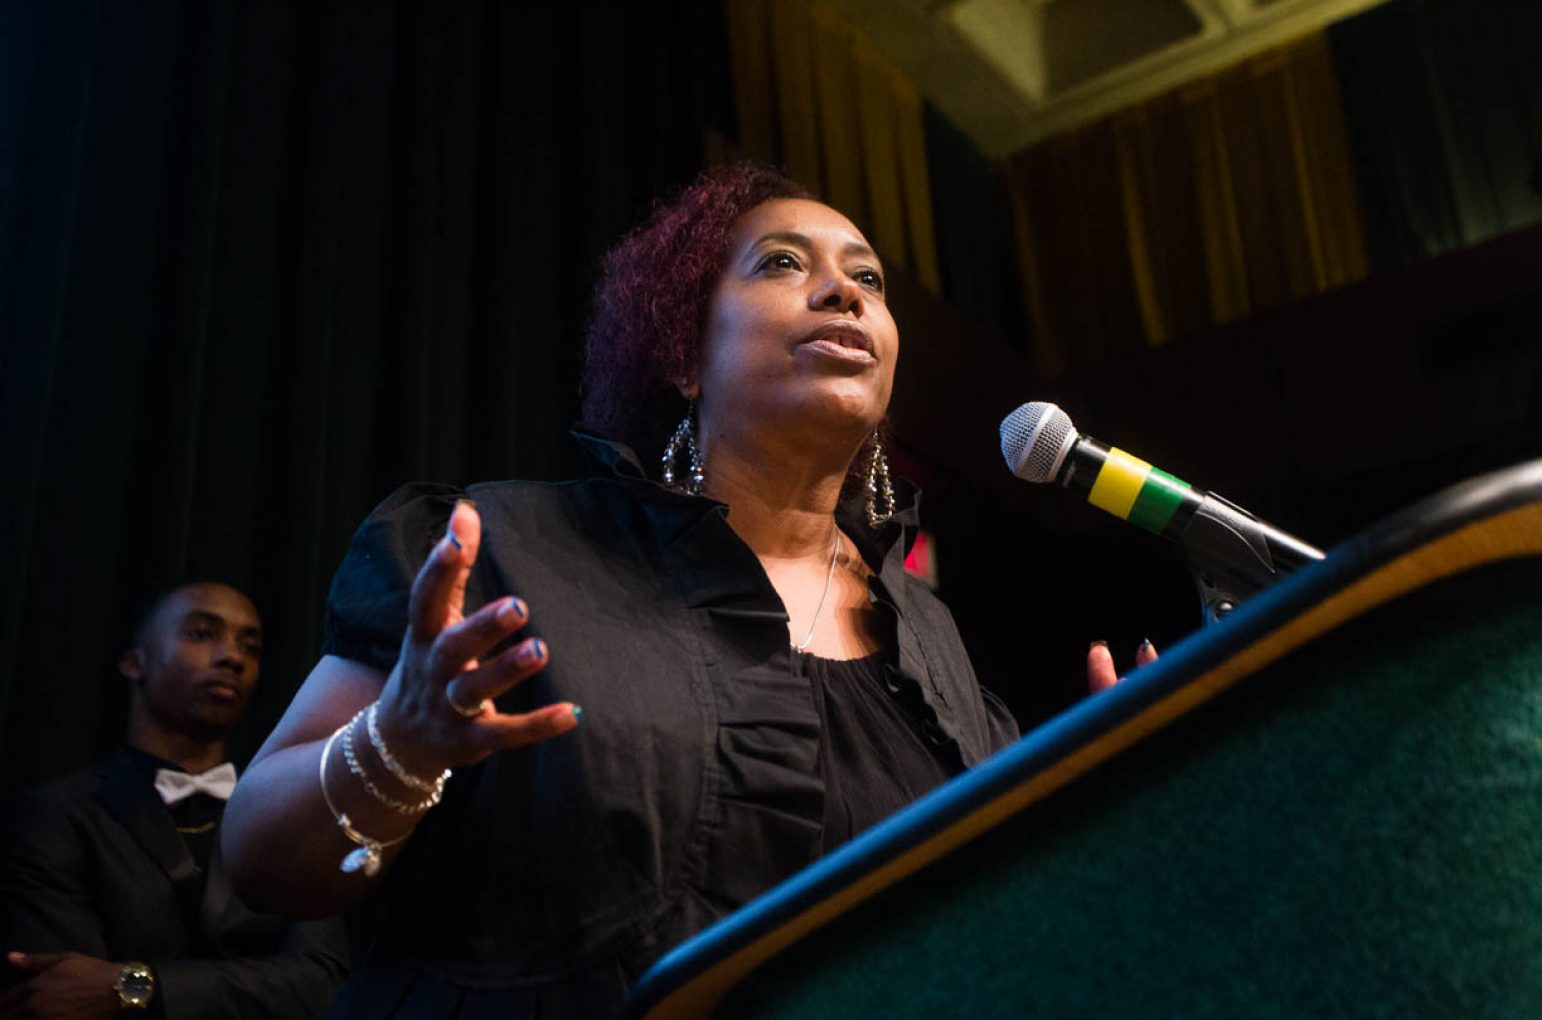 Yvonne Alexander, mother of the late Isaiah Alexander, speaks during a presentation of the Isaiah Alexander Award in the University Union Redwood Room on July 9. Her son, an active member of the Sac State community, died of kidney cancer earlier this year. A scholarship has been set up and awarded in his memory. (Photo by Nicole Fowler)